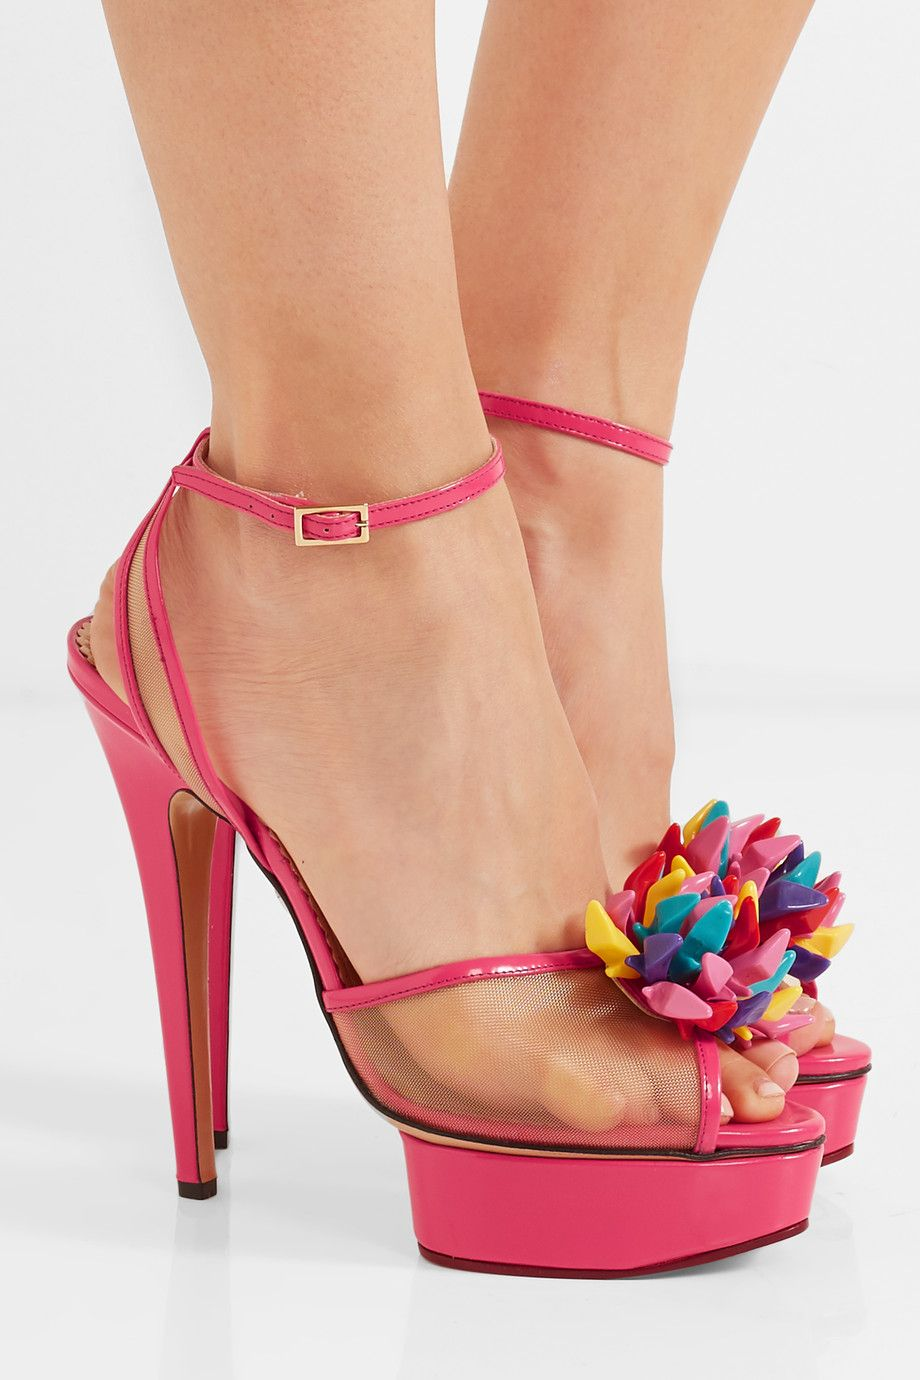 Charlotte Olympia Pomeline sandals